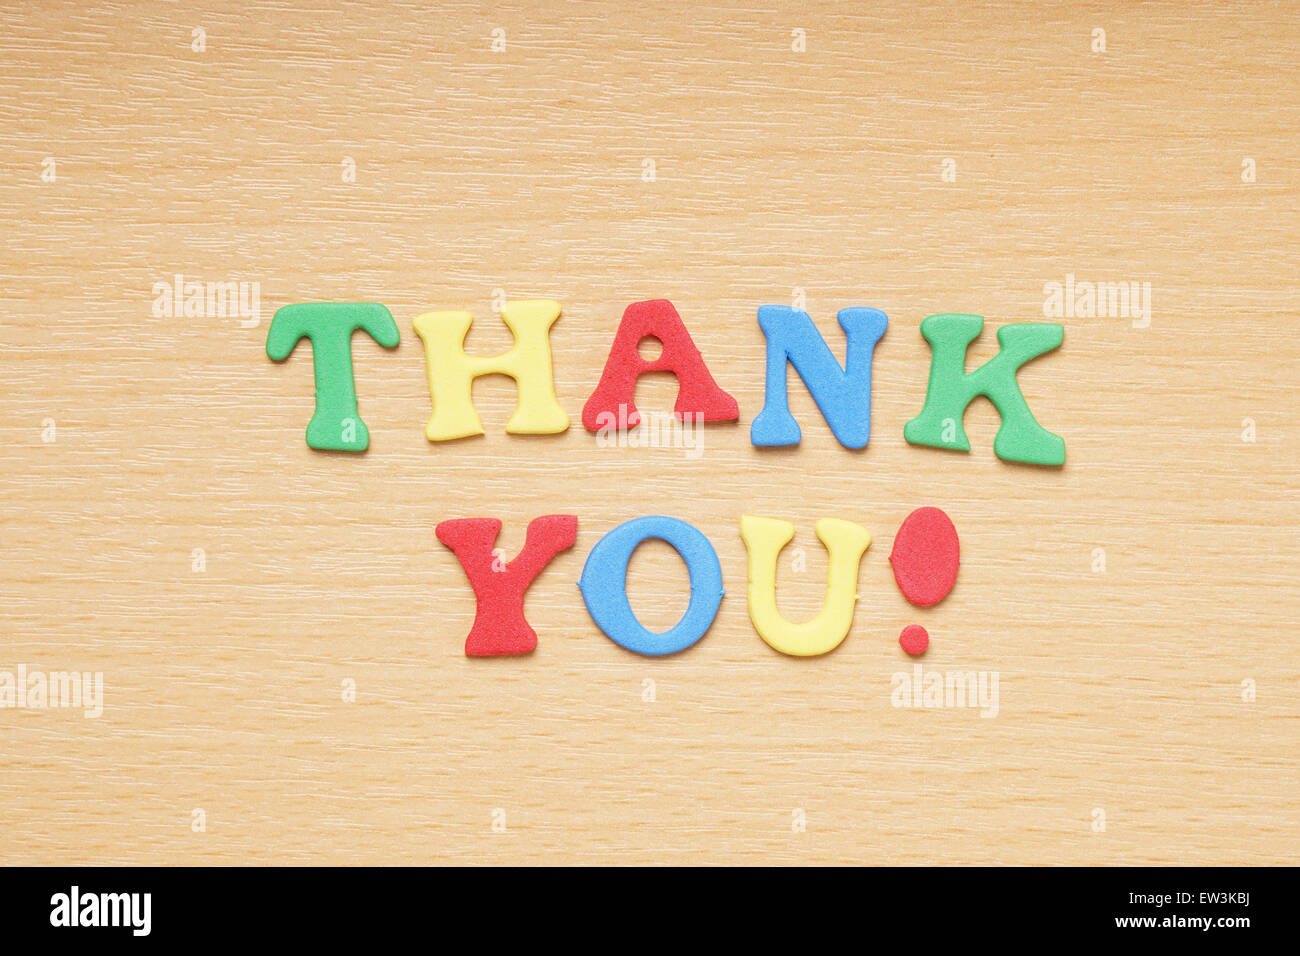 thank you in foam rubber letters - Stock Image